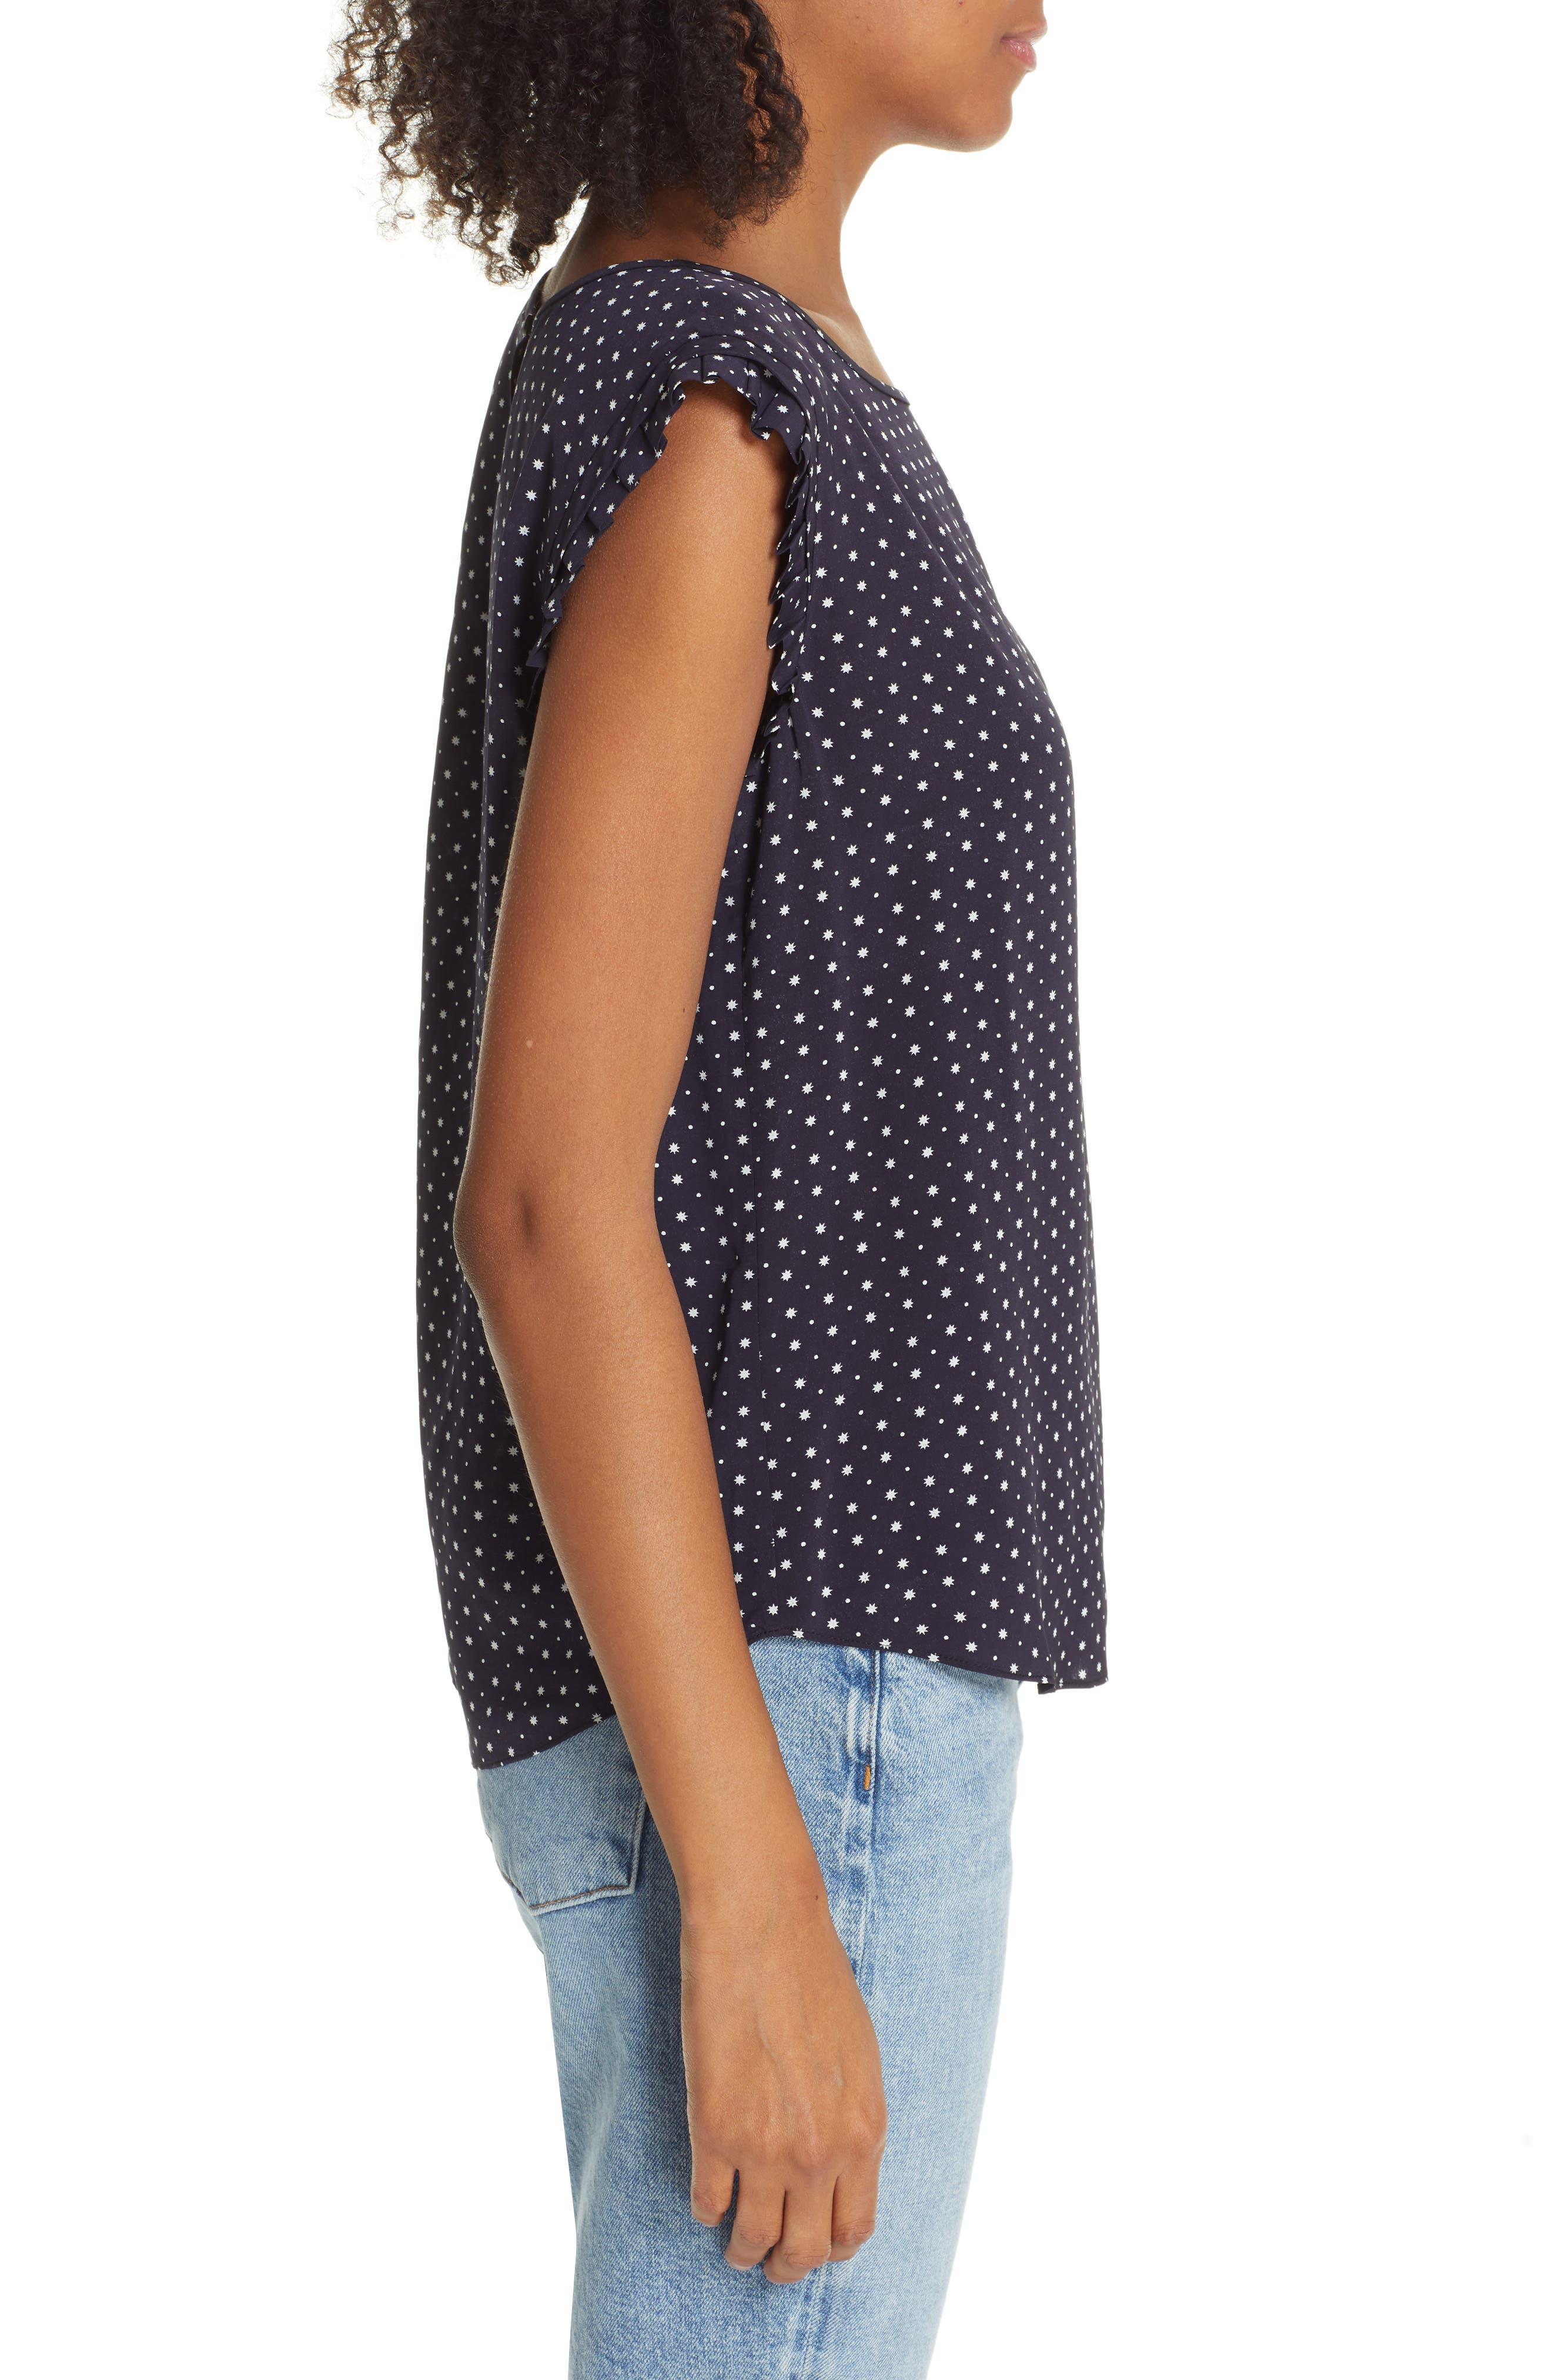 JOIE, Laurelle Print Woven Top, Alternate thumbnail 3, color, 410